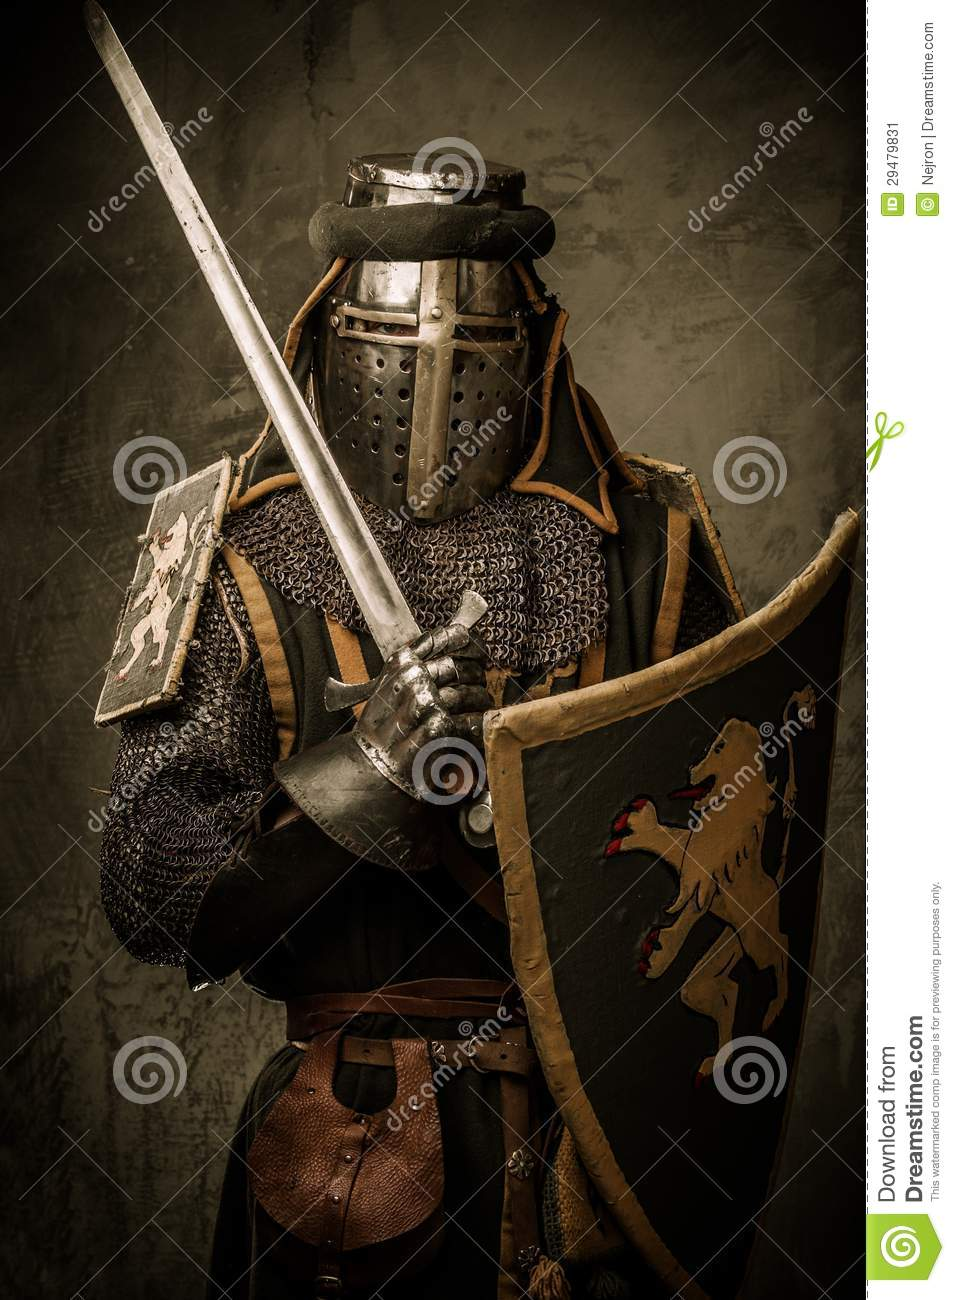 Knight With Sword And Shield Stock Image - Image: 29479831